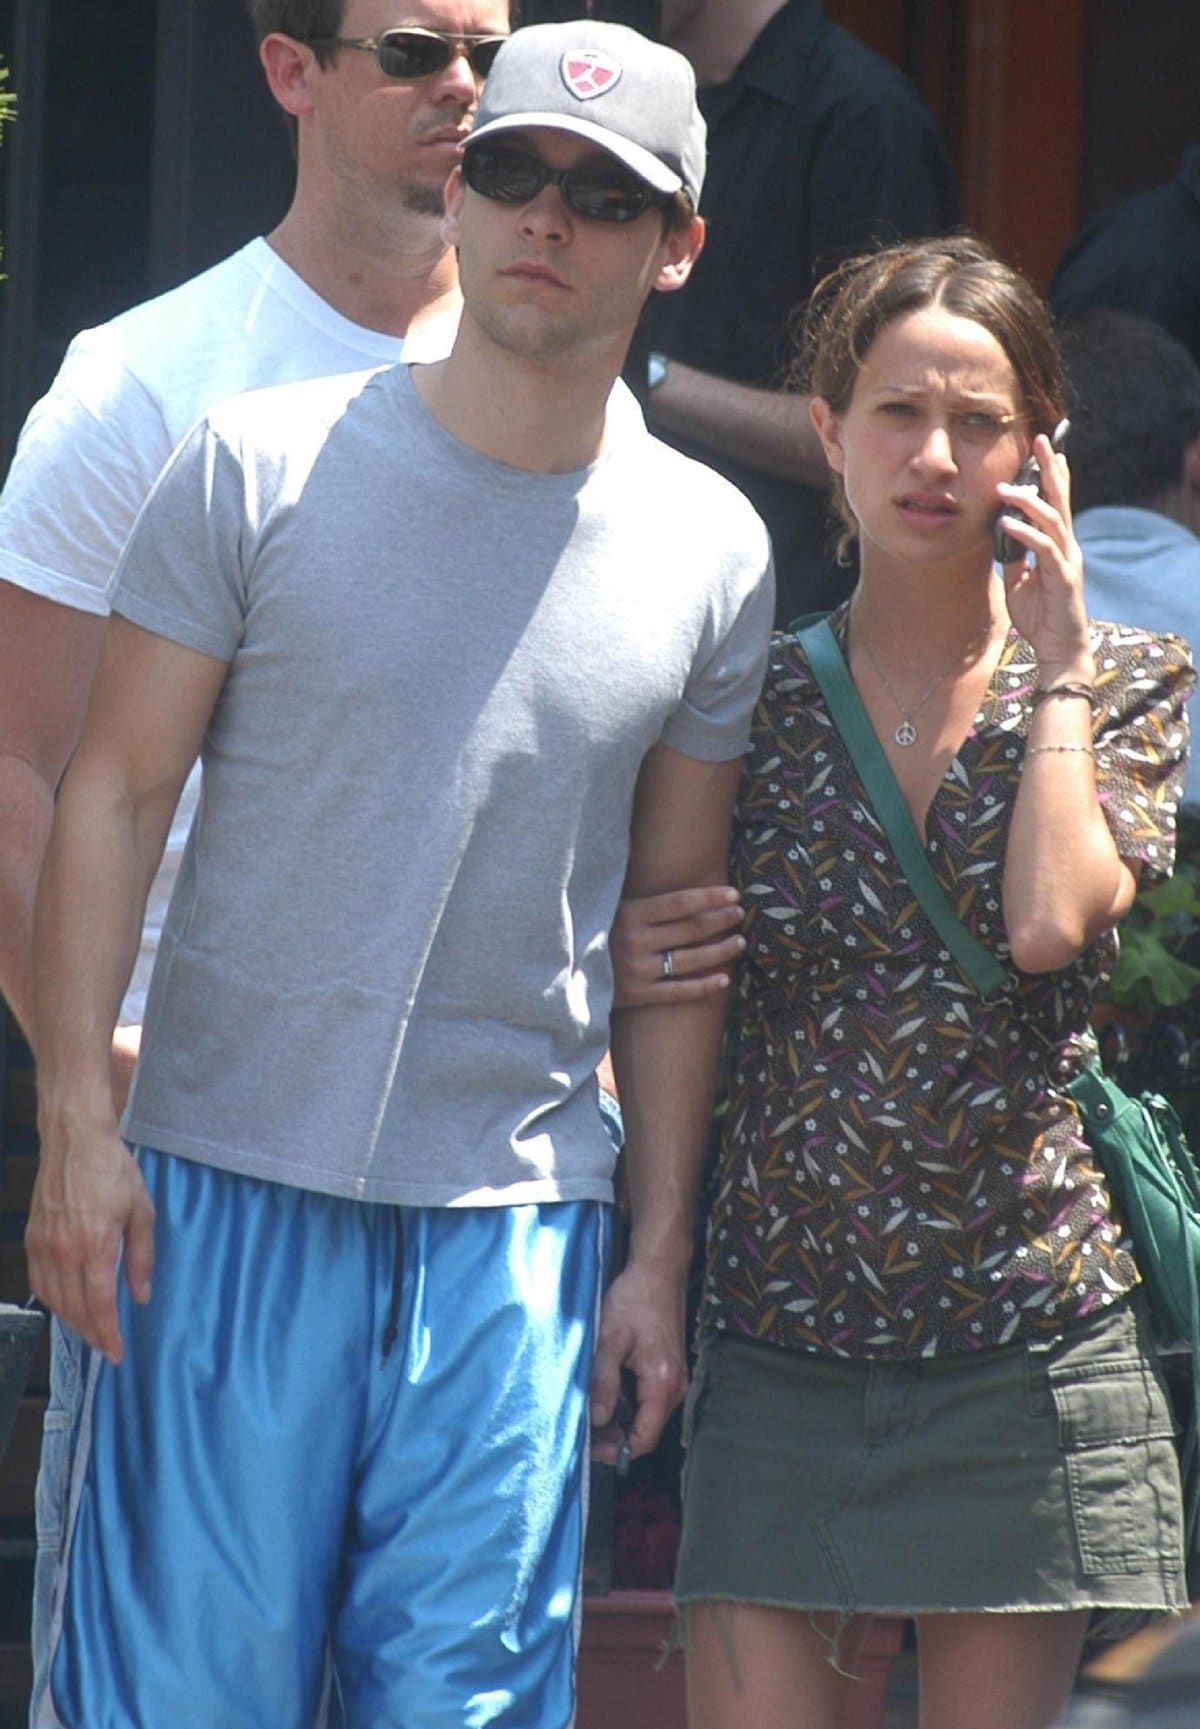 Tobey Maguire and Jennifer Meyer met in early 2003 and married in 2007 in an intimate wedding ceremony in Hawaii